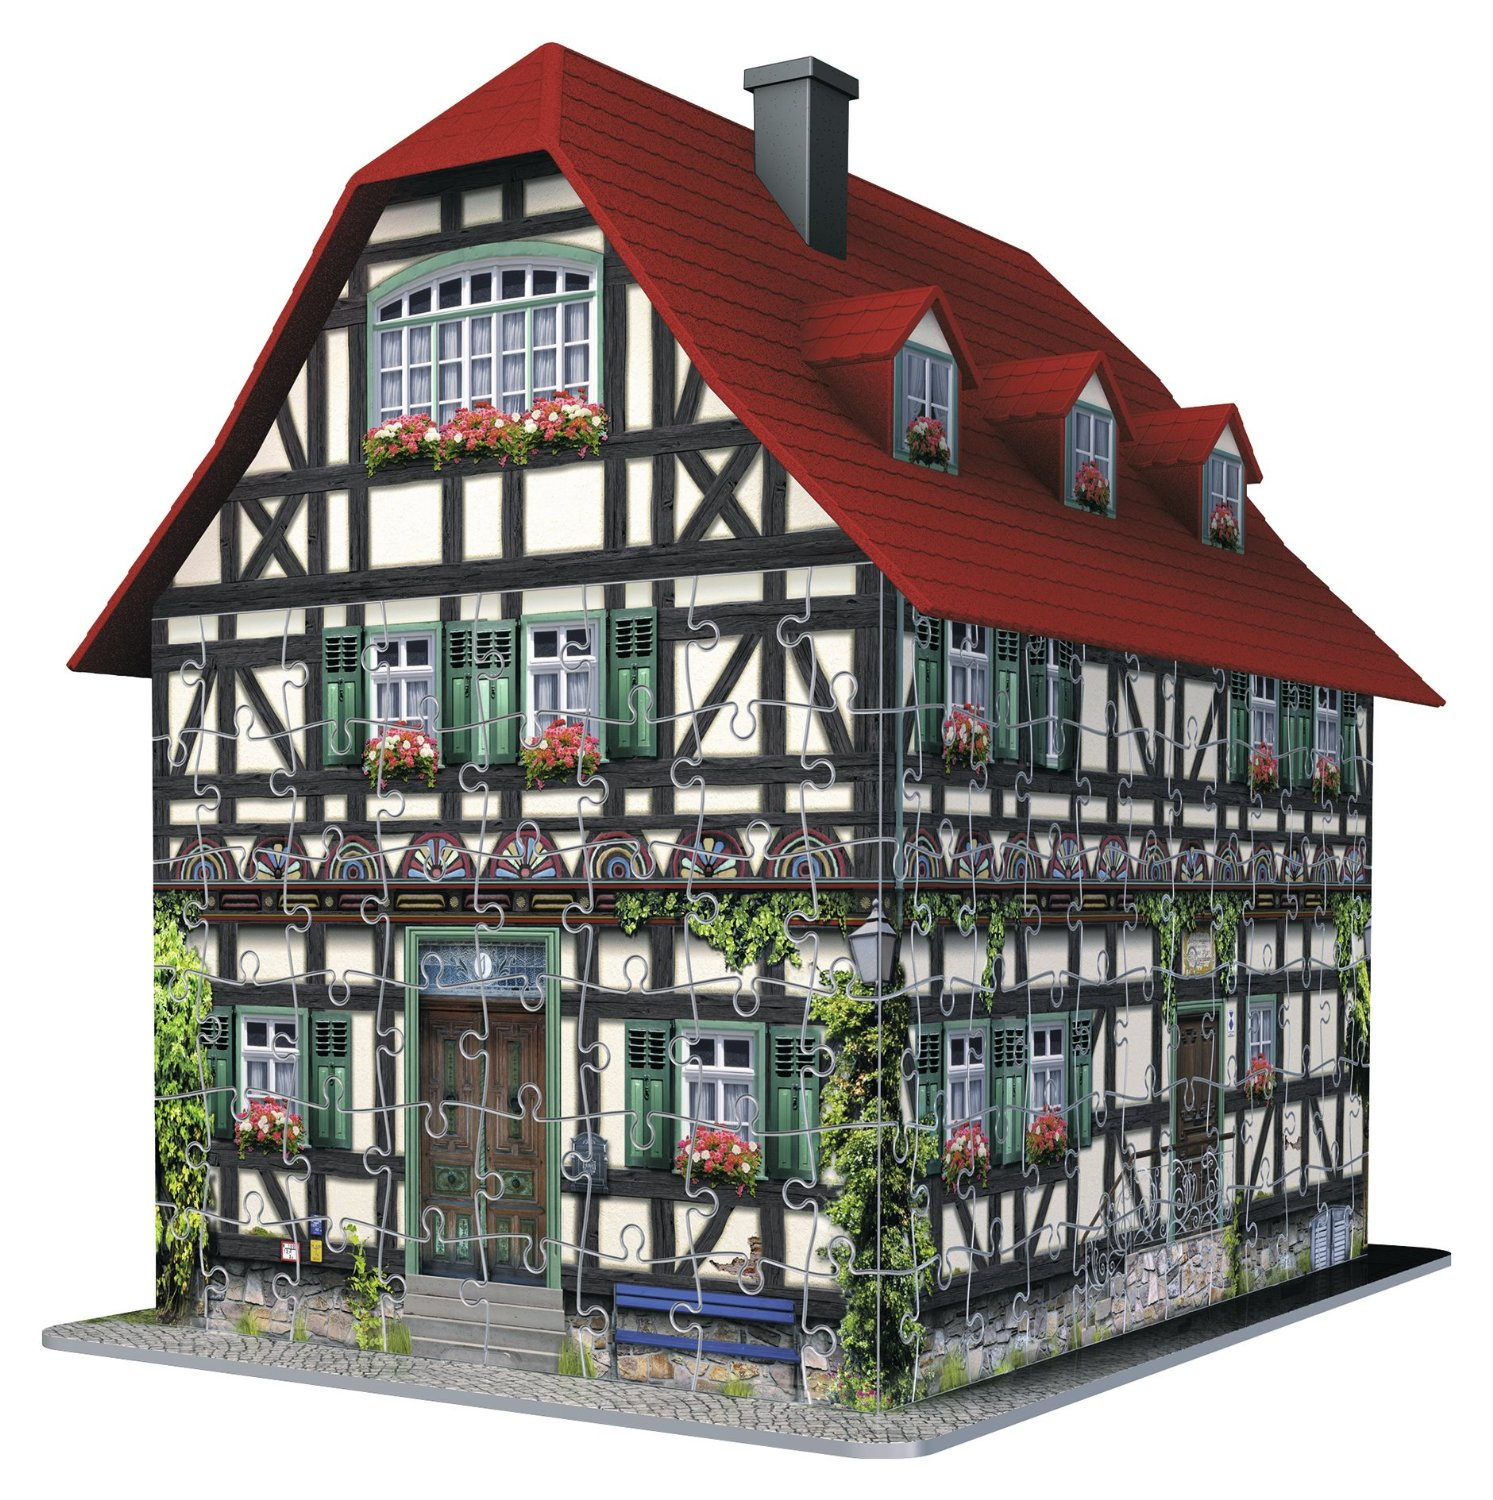 fachwerkhaus 216 teile 3d puzzle ravensburger puzzle online kaufen. Black Bedroom Furniture Sets. Home Design Ideas